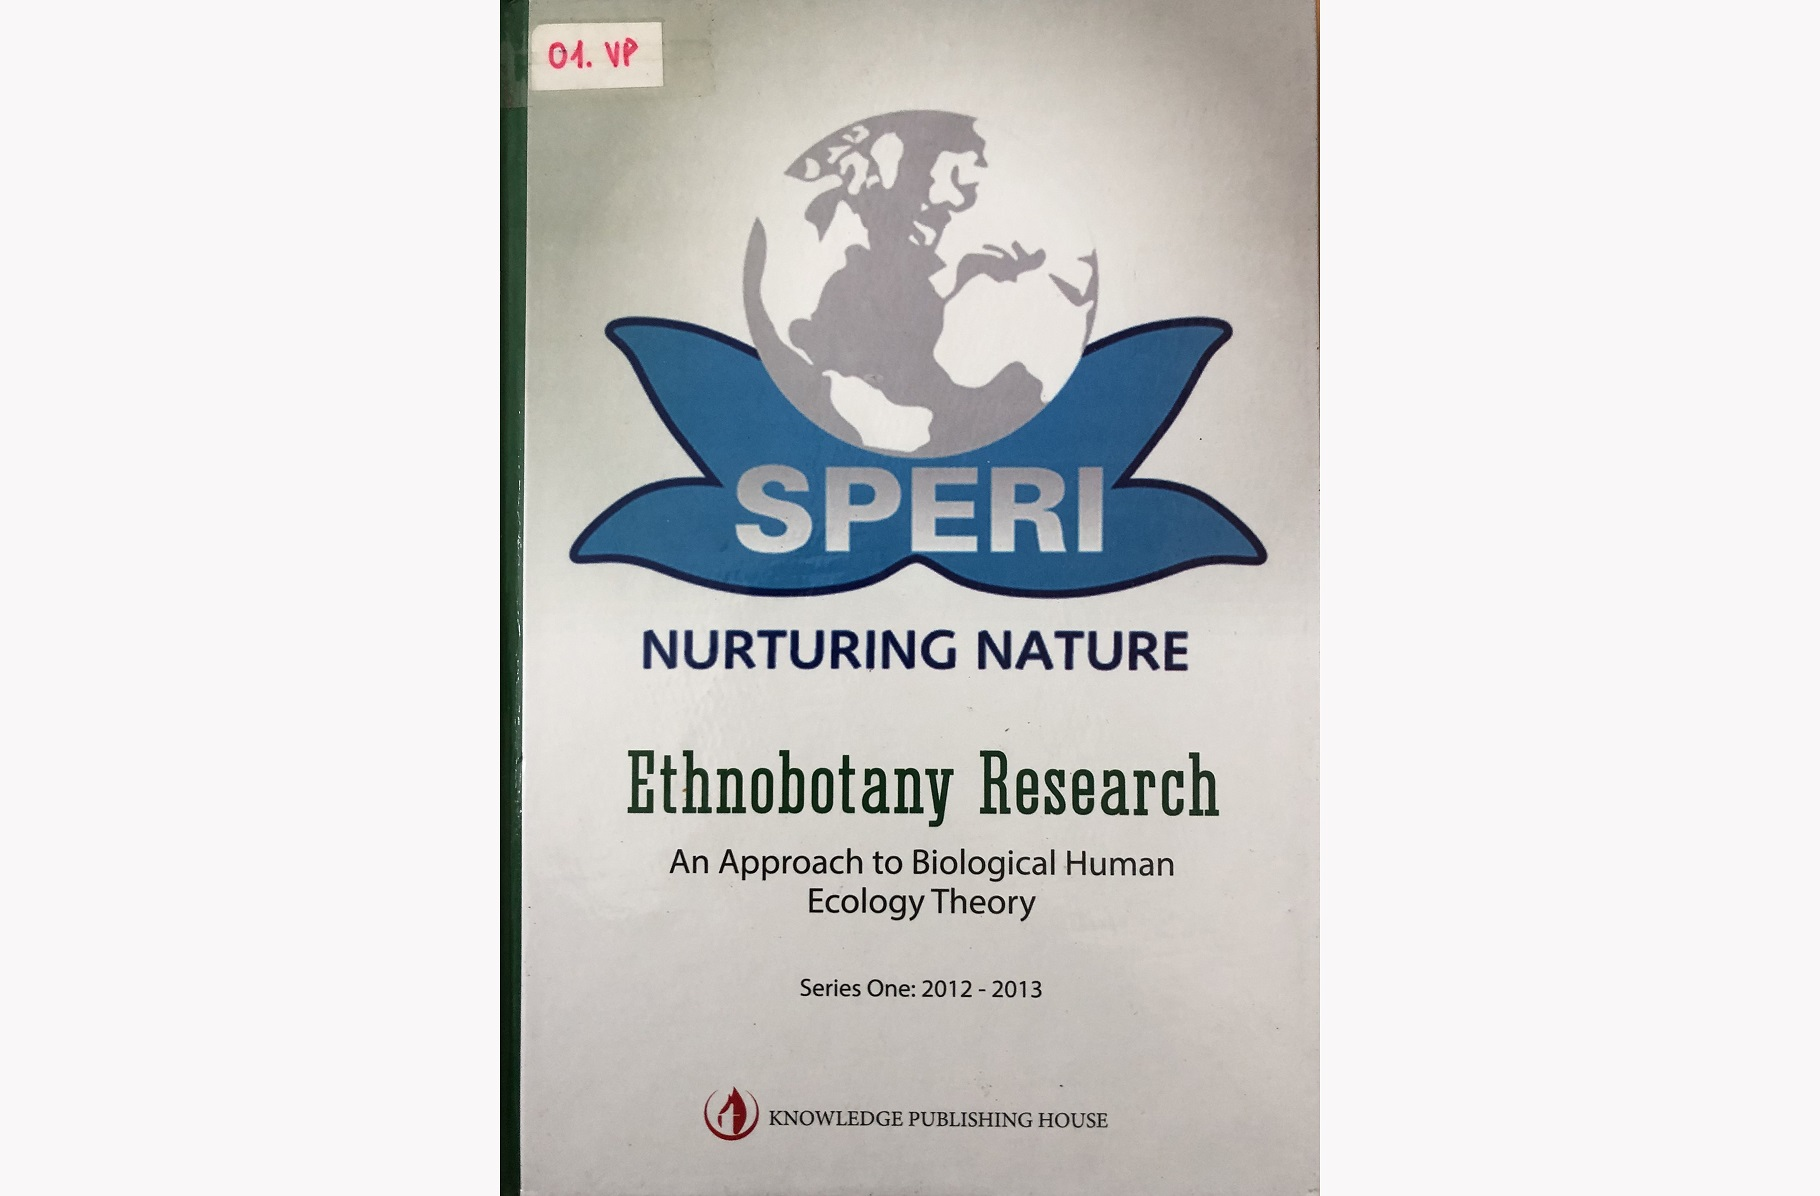 Ethnobotany Research - An approach to Biological Human Ecology Theory